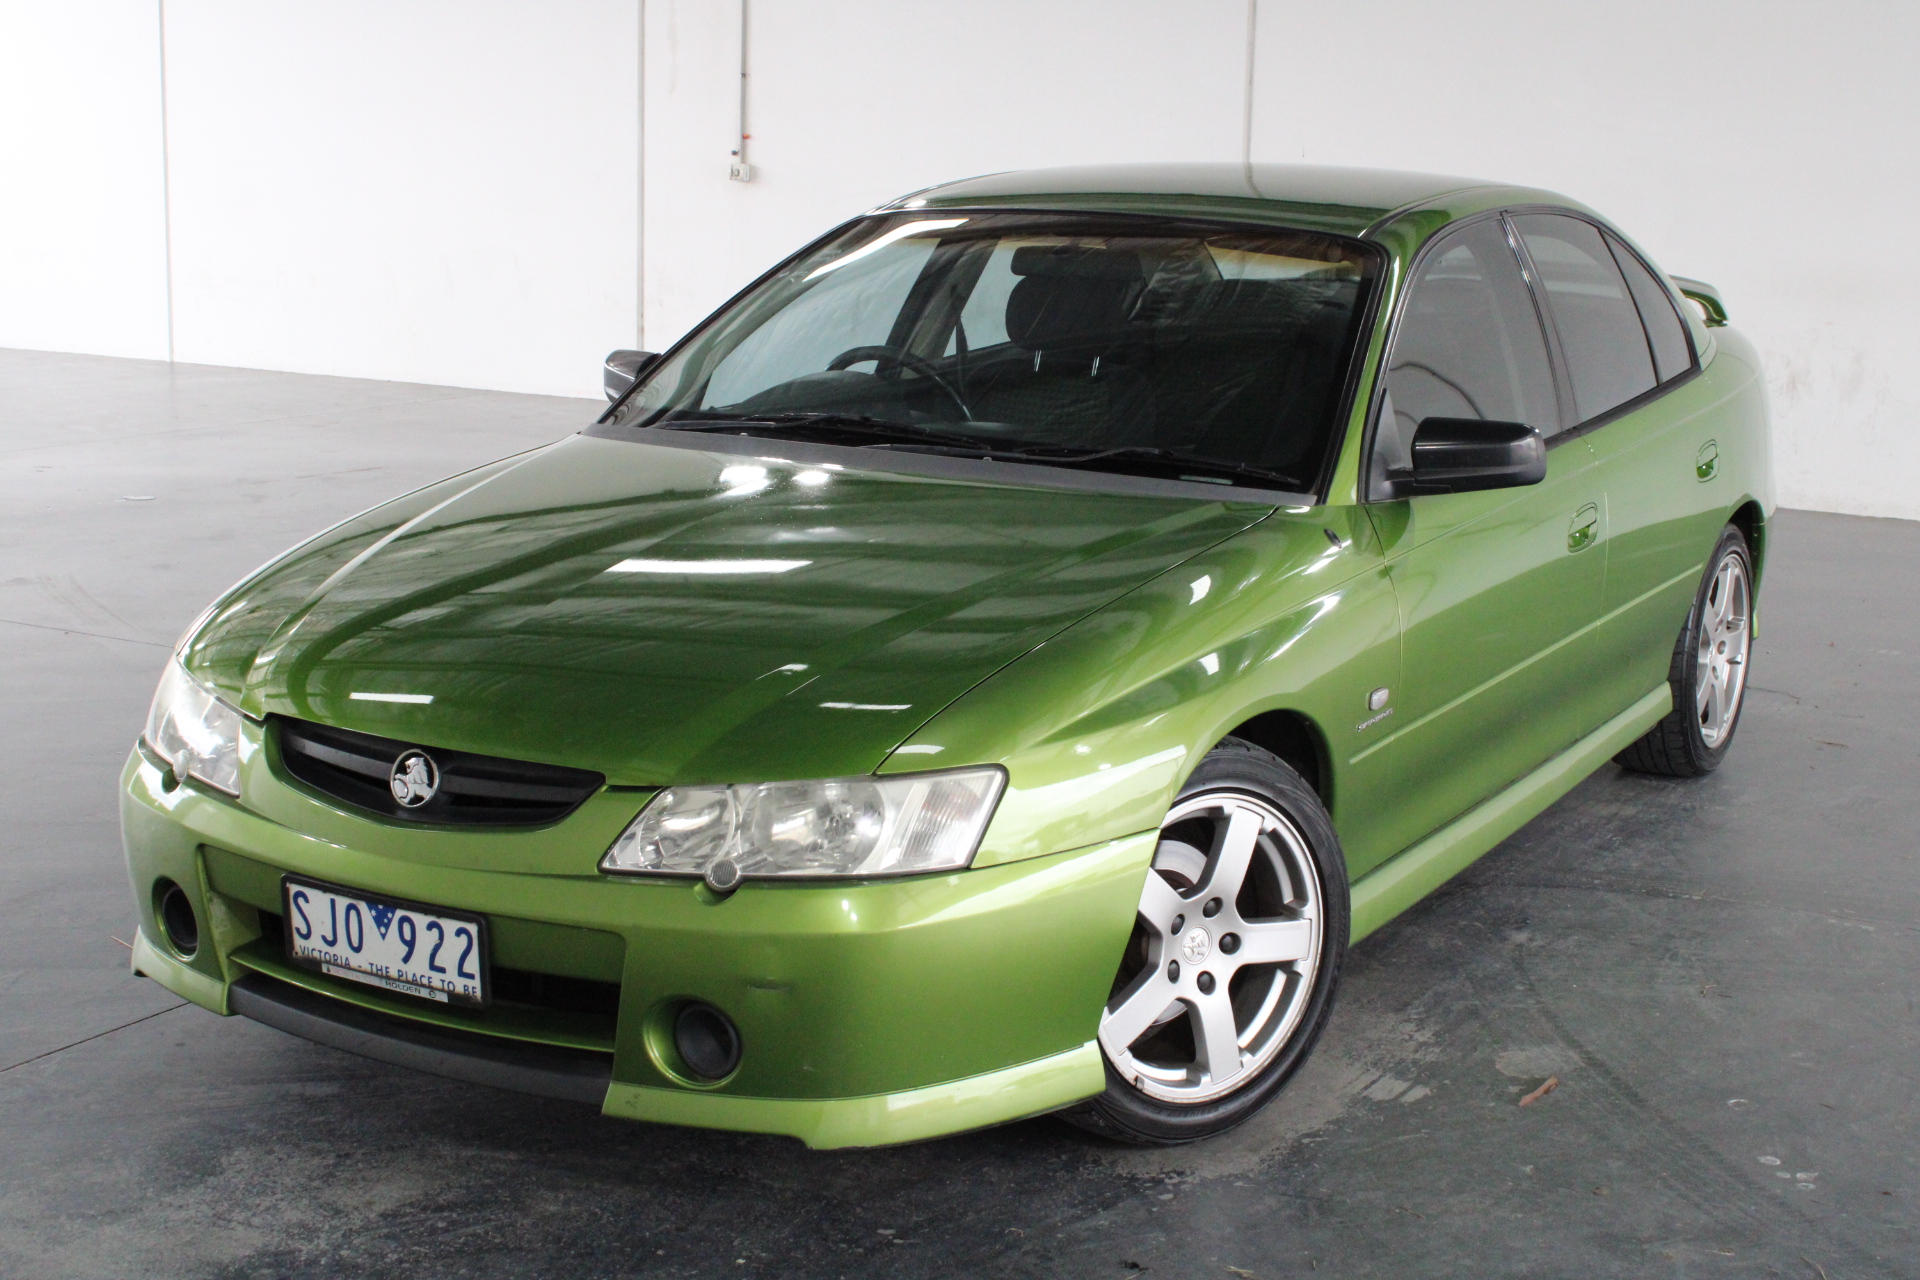 2003 Holden Commodore S Y Series Supercharged Auto Sedan